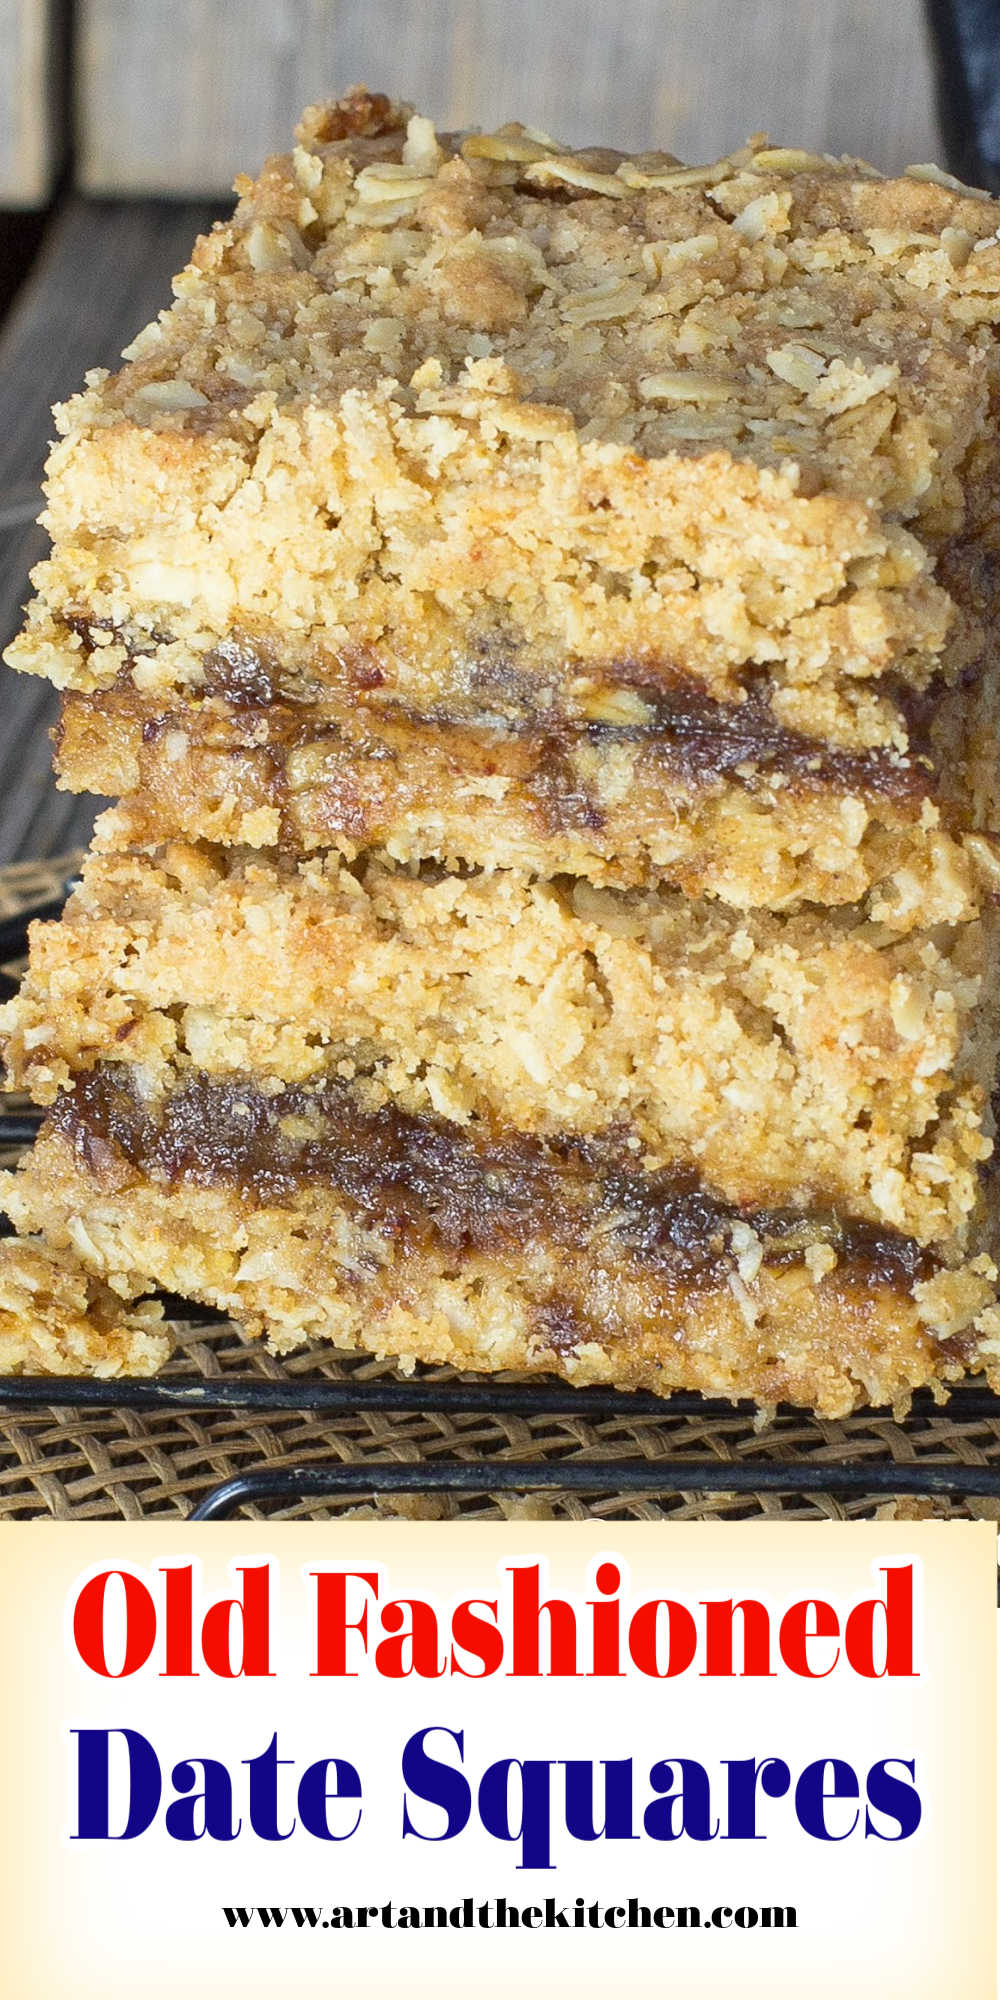 An old fashioned recipe for Date Squares or as we used to call them matrimonial squares. A delicious layer of sweet date filling sandwiched between a crumbly chewy oatmeal crust and topping. via @artandthekitch